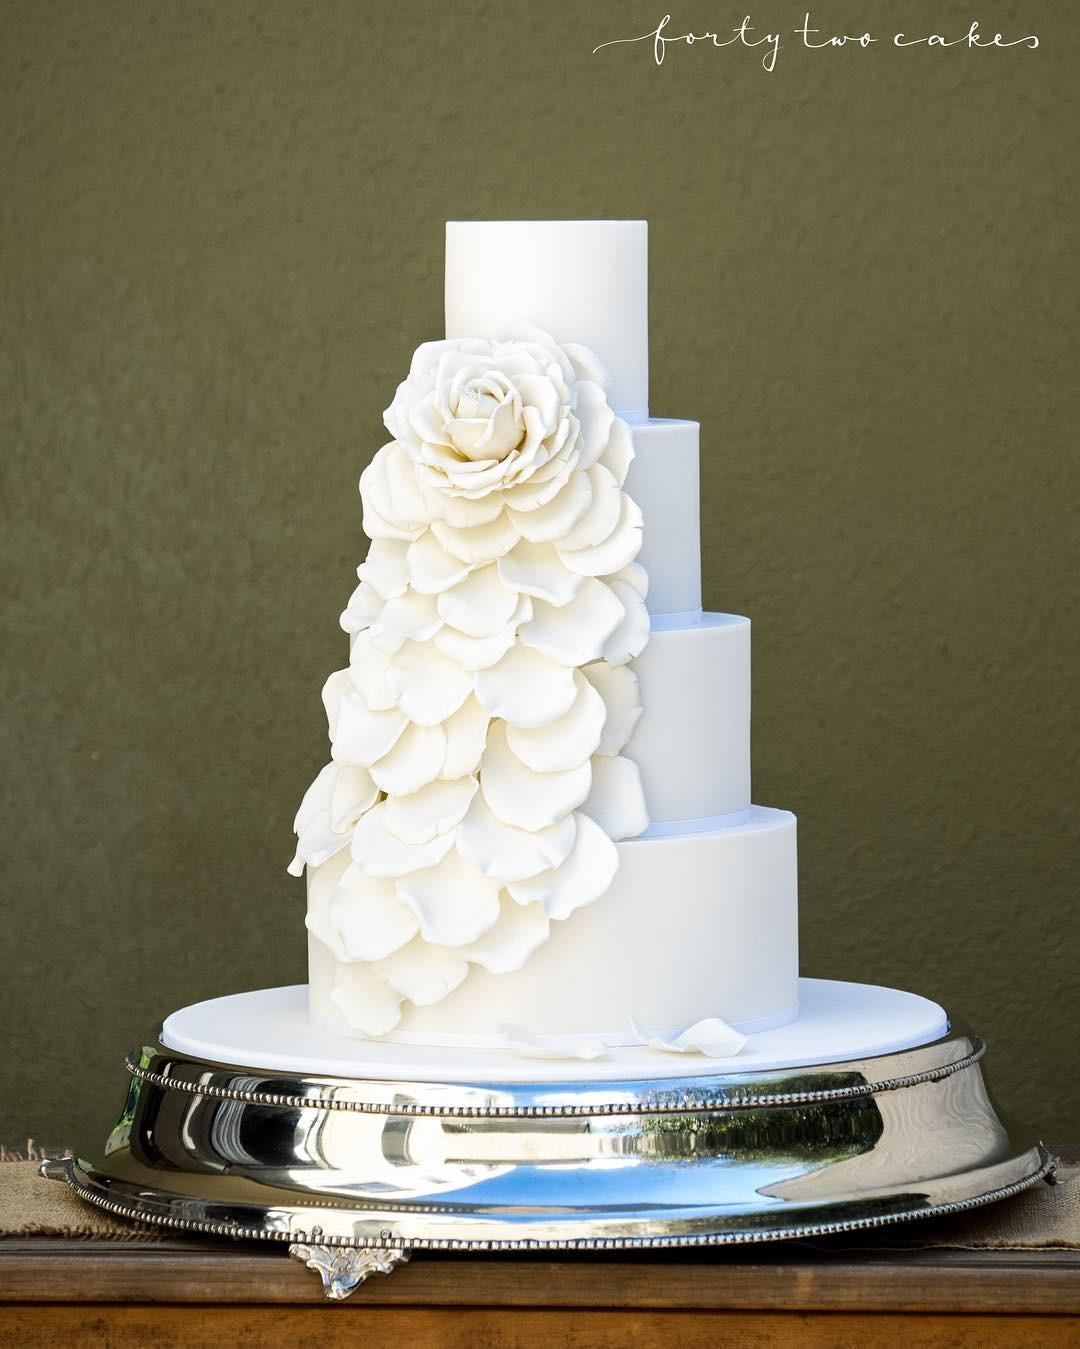 Wedding Cake Trends 2018 Cakes Favours Guest Books